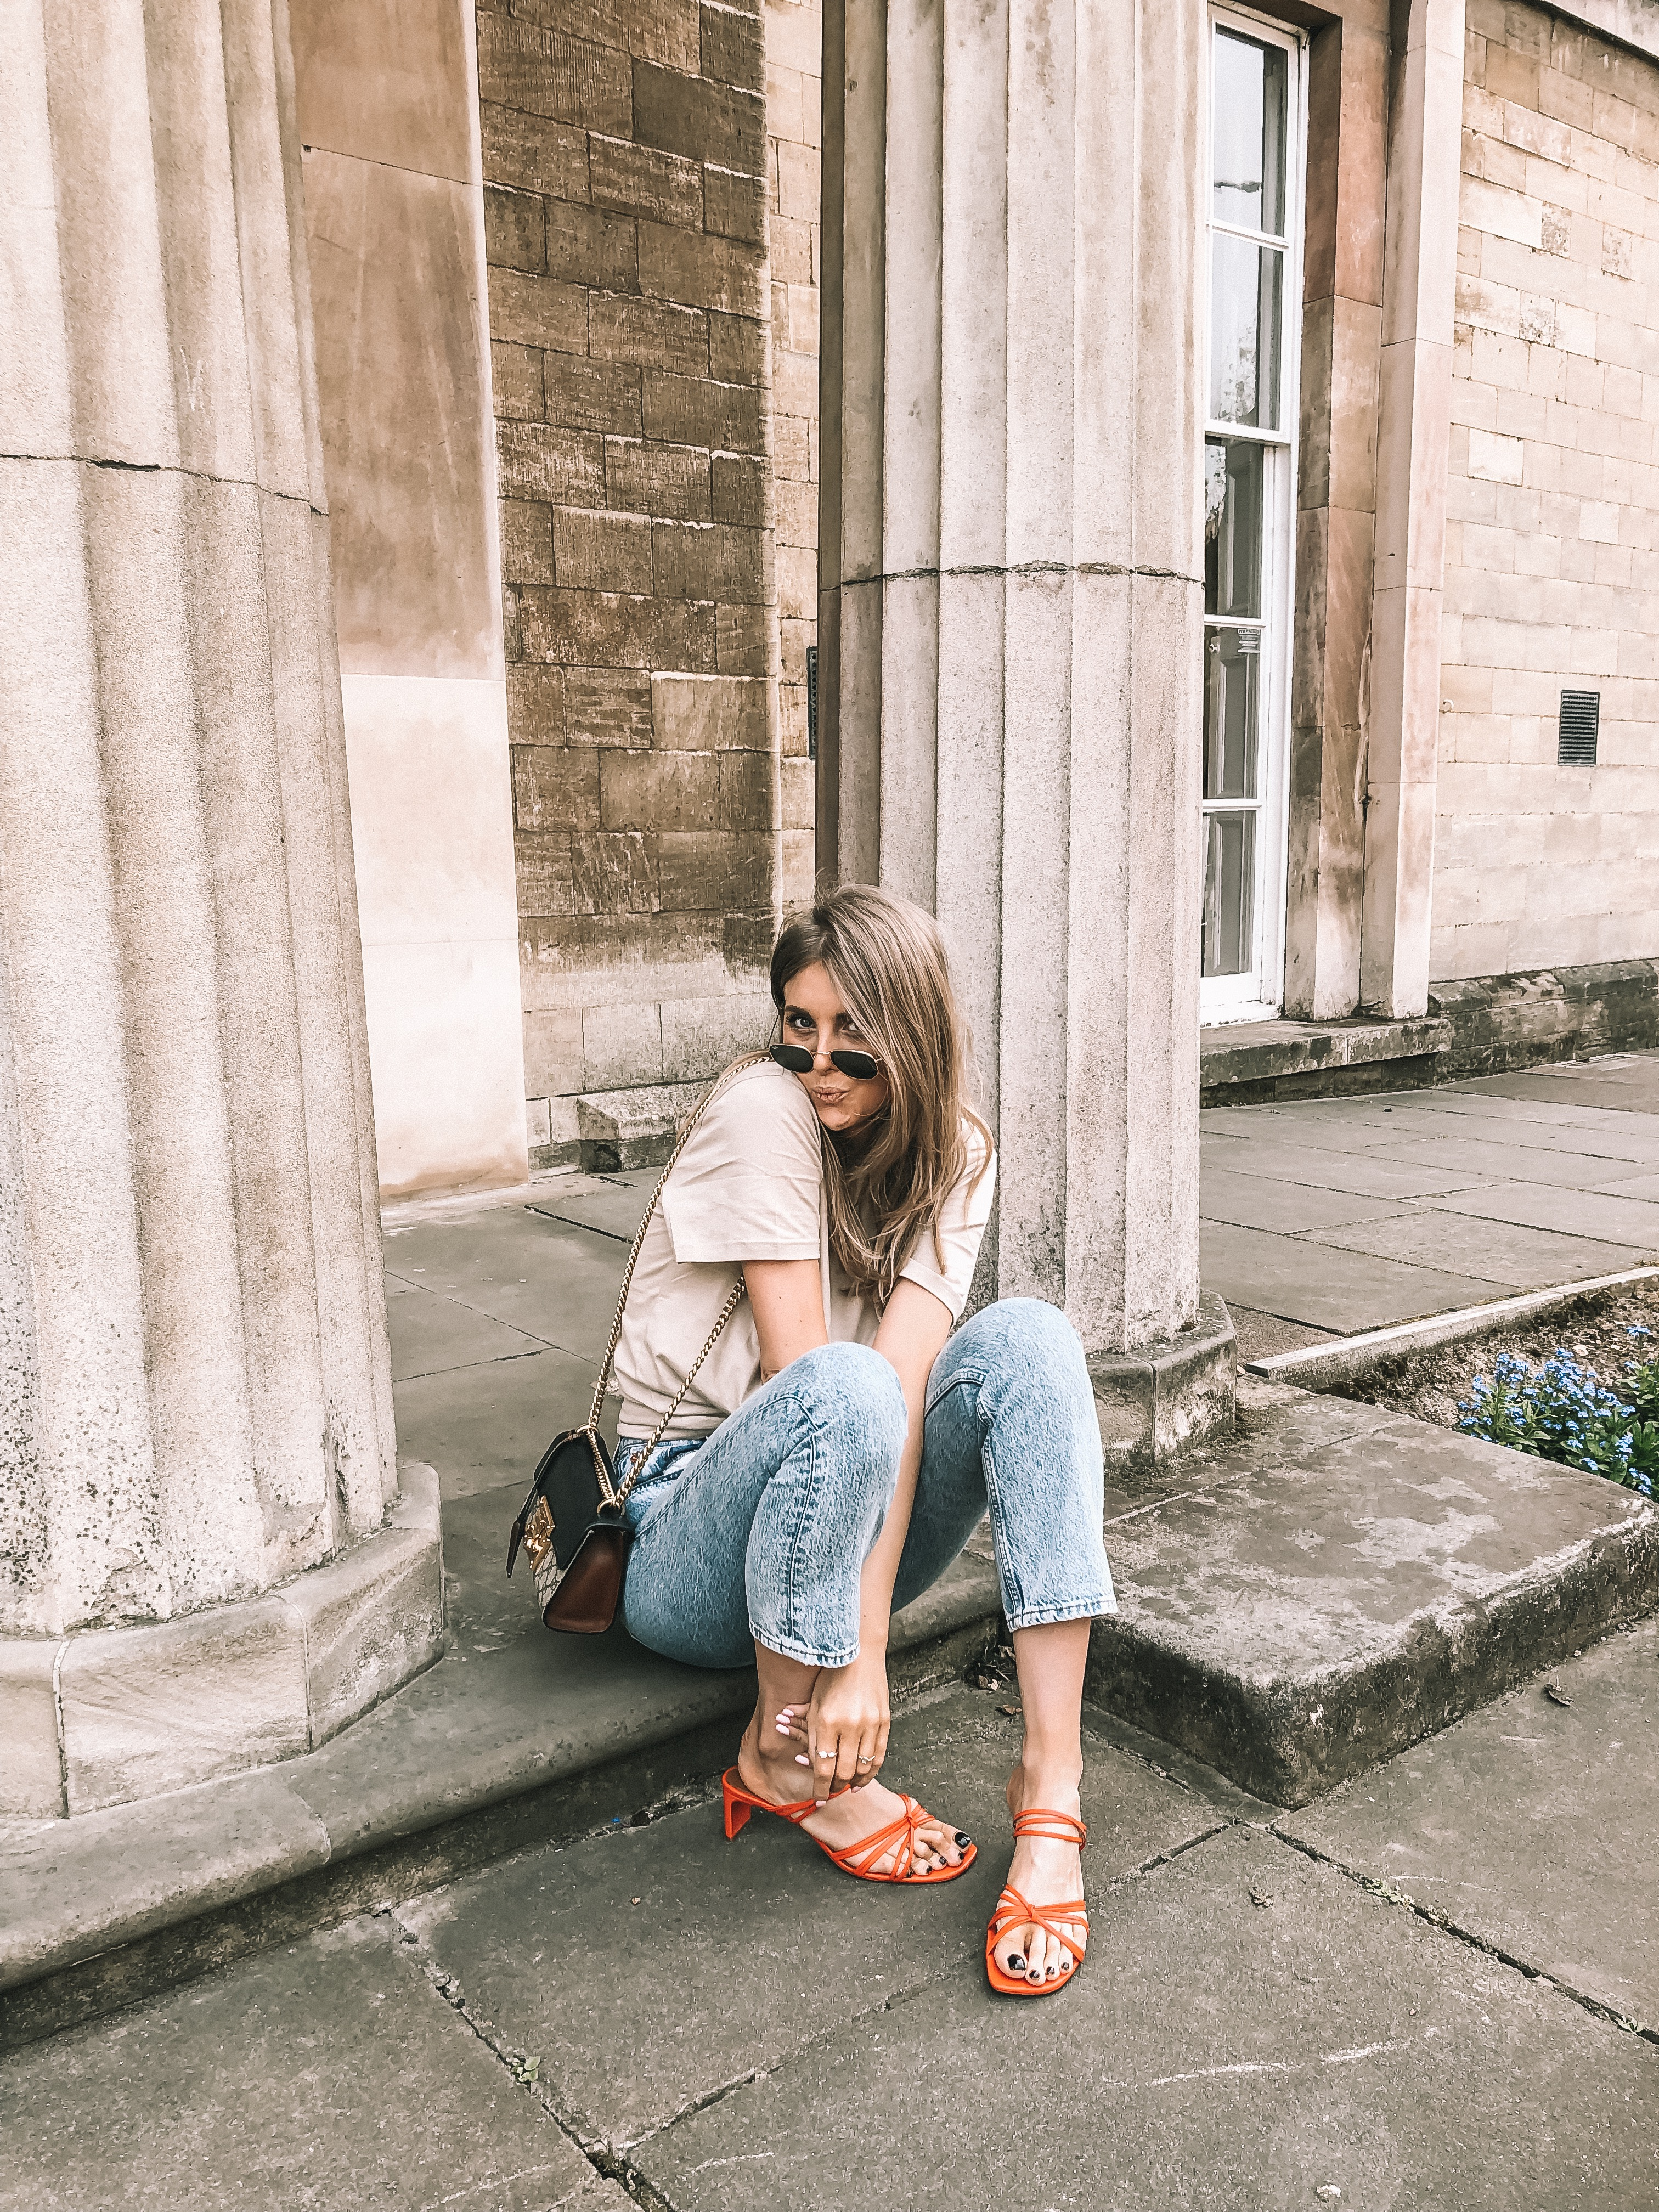 ways to wear the minimal sandals in spring. & Other stories red strappy sandals